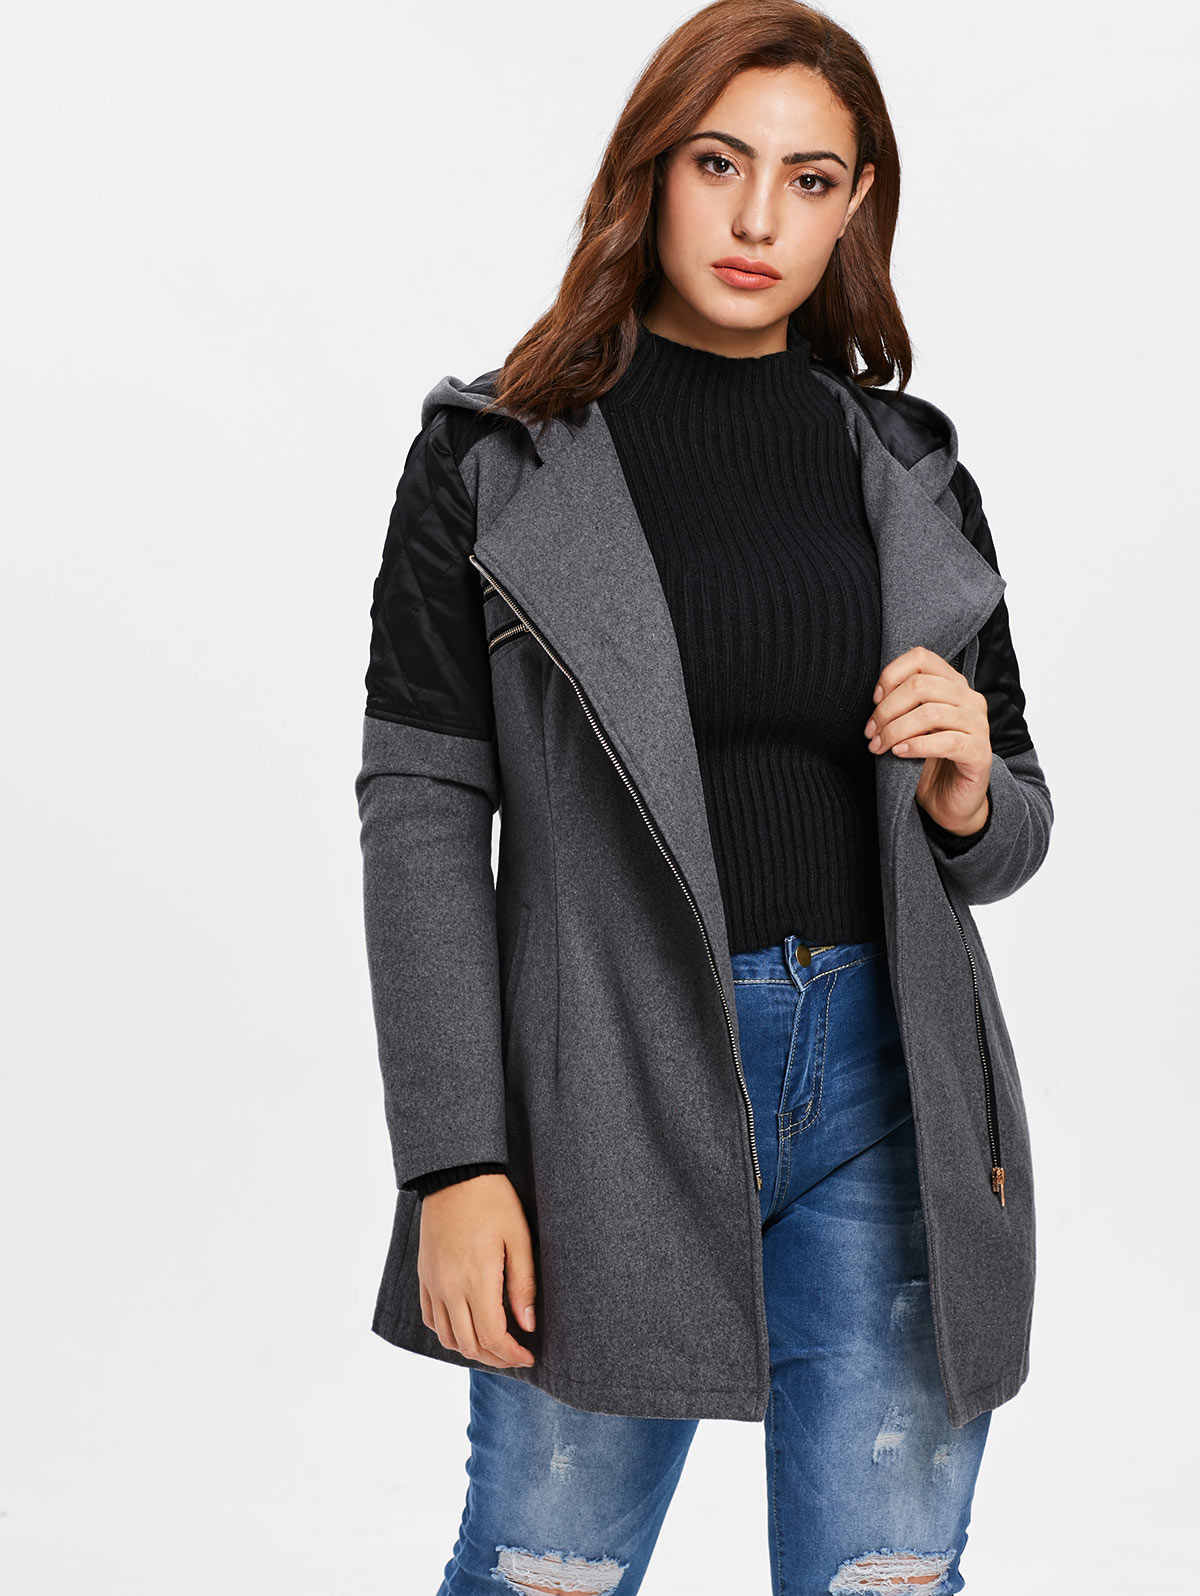 Wipalo Autumn Winter Plus Size 5XL Hooded Contrast Woolen Coat Casual Wide-Waisted Patchwork Zipper Up Jacket Coat Women Coats